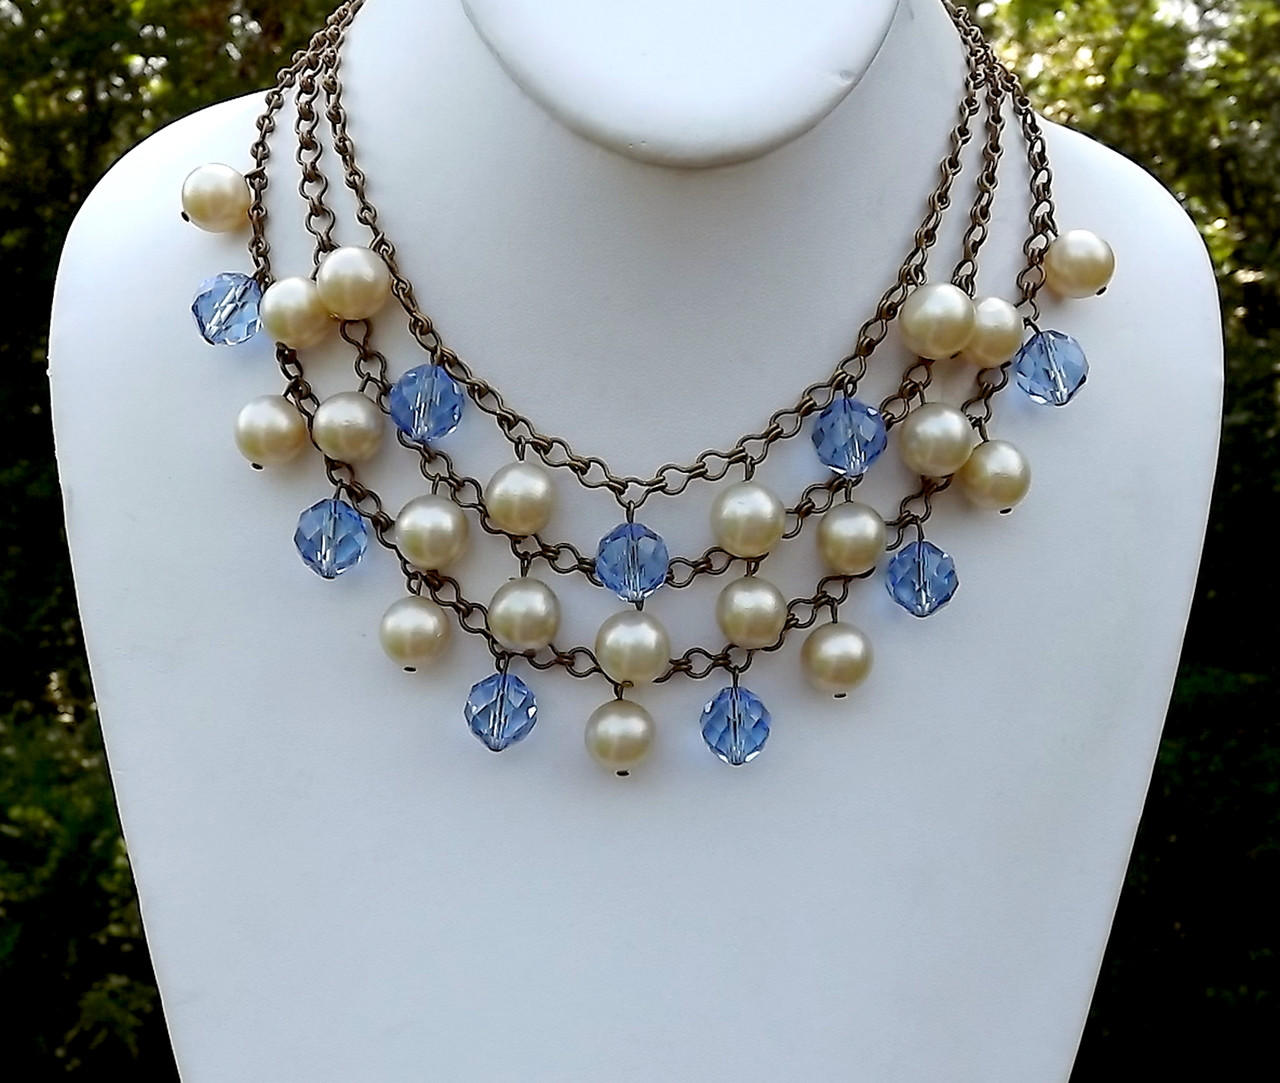 1f26b65a29bd0 Early MIRIAM HASKELL Necklace Pearls Blue Crystal Beads Ornate Clasp 3  Strand